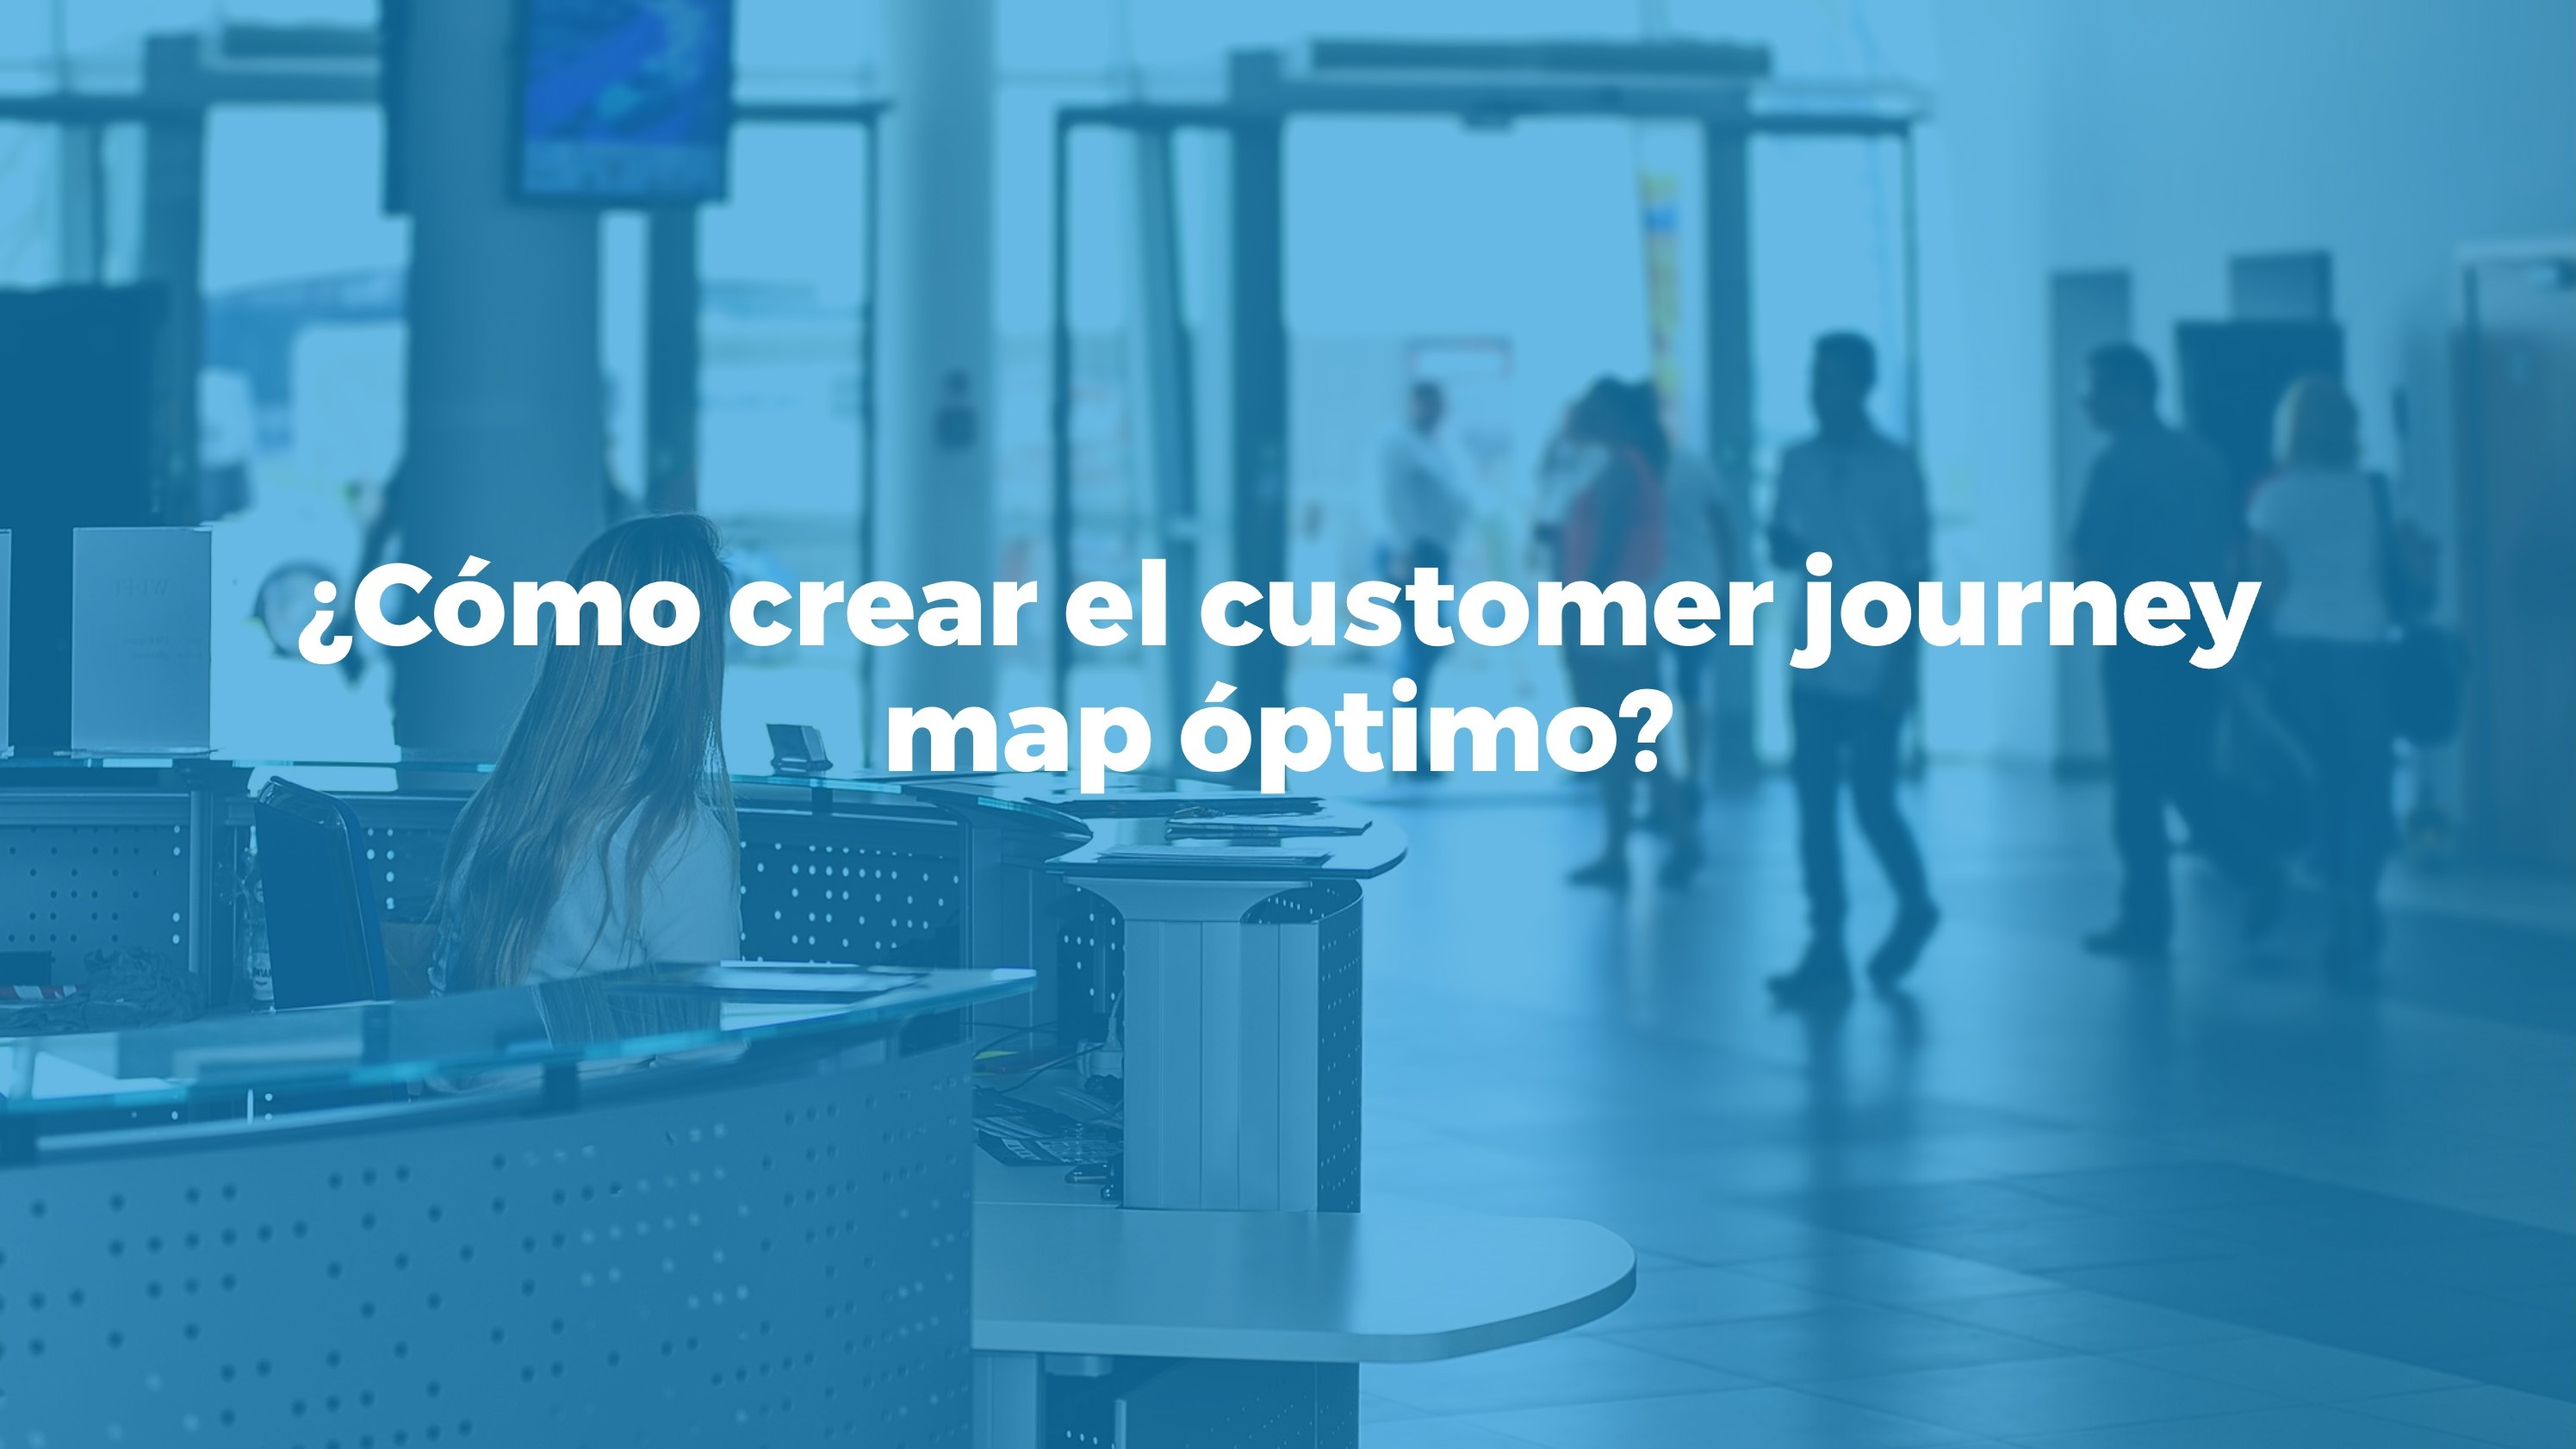 Cómo crear el customer journey map ideal